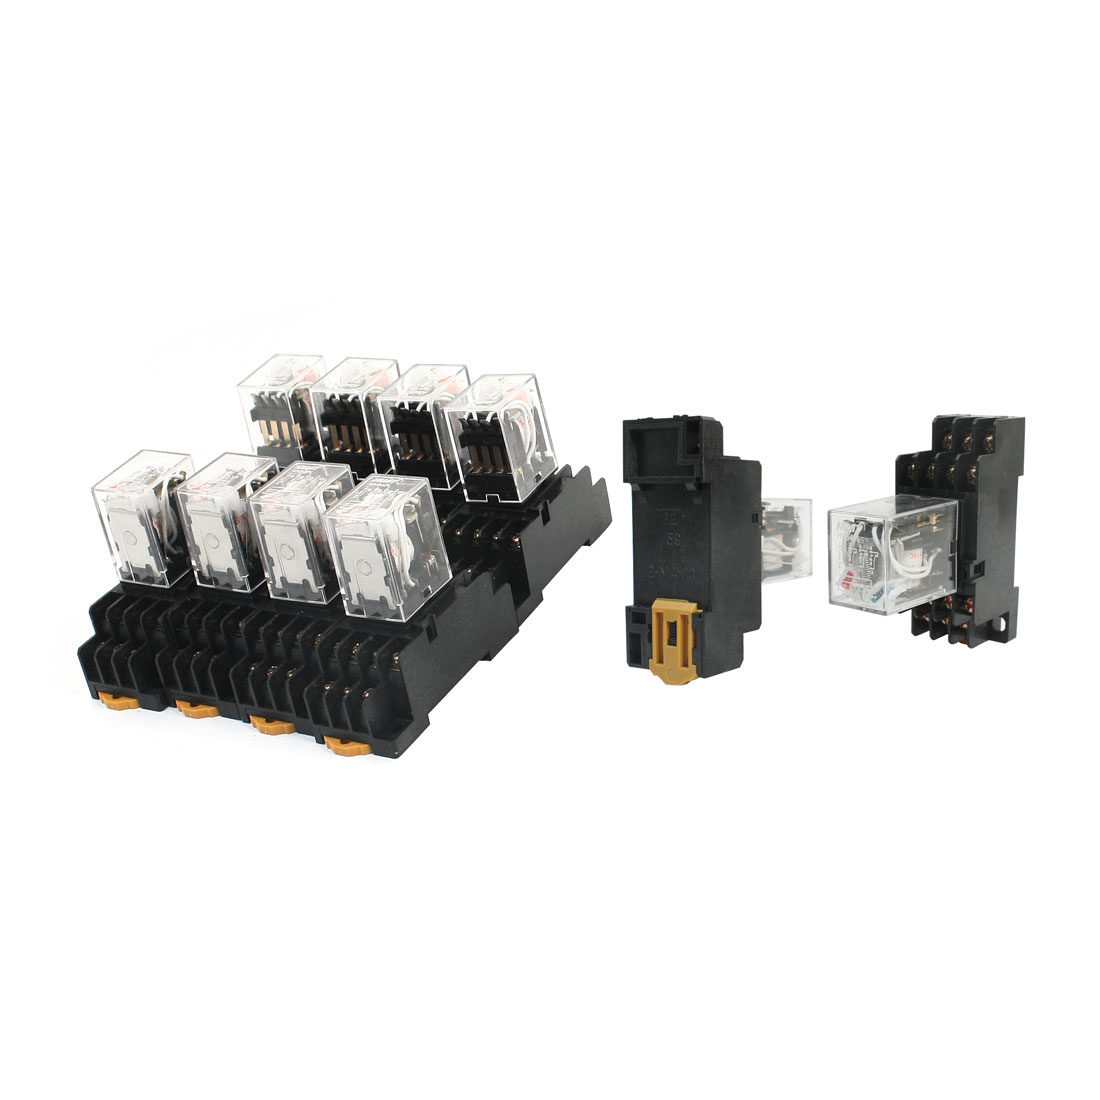 10 Pcs AC 36V Coil Voltage Red Light 4PDT 14Pin 4NO 4NC 35mm DIN Rail Mount General Purpose Power Relay w Socket Base